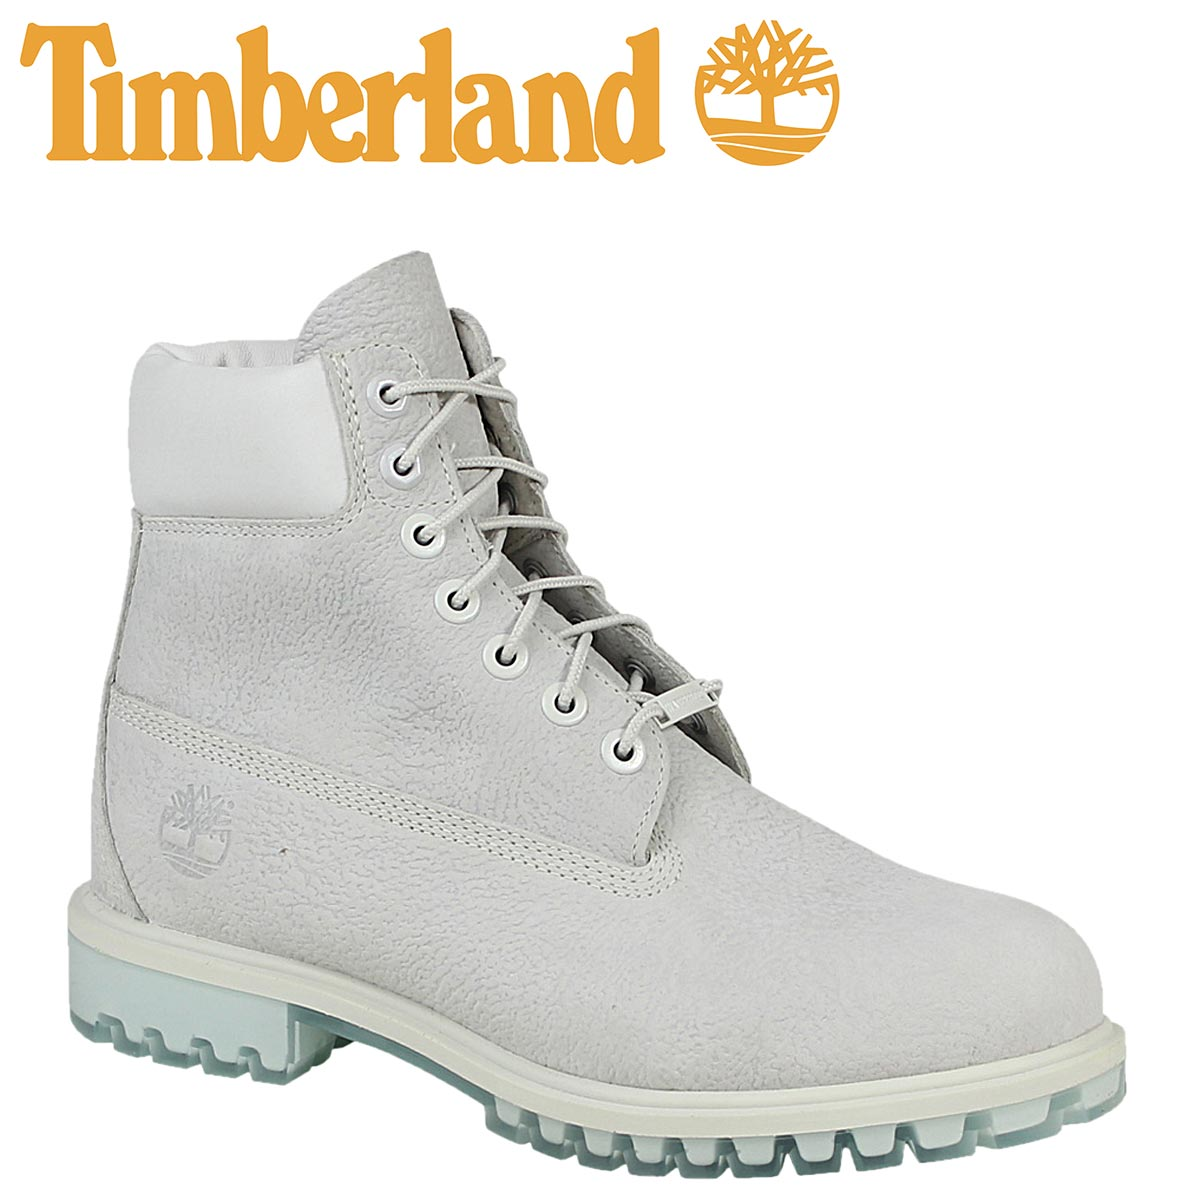 Timberland Timberland 6INCHI 6 inches premium boots men 6 INCH PREMIUM WATERPROOF BOOTS A17UK W Wise waterproofing is gray